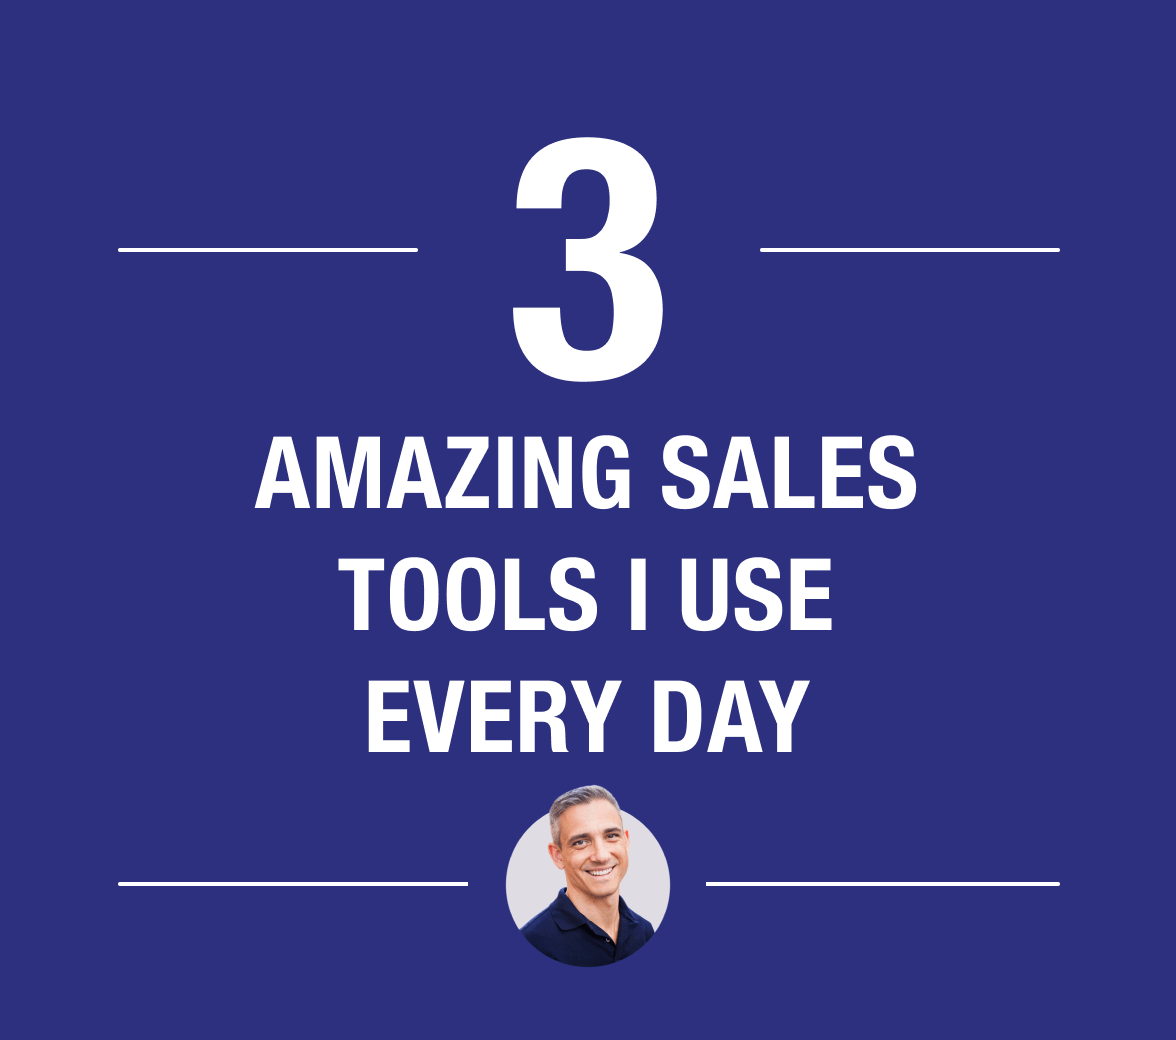 3 Amazing Sales Tools I Use Every Day